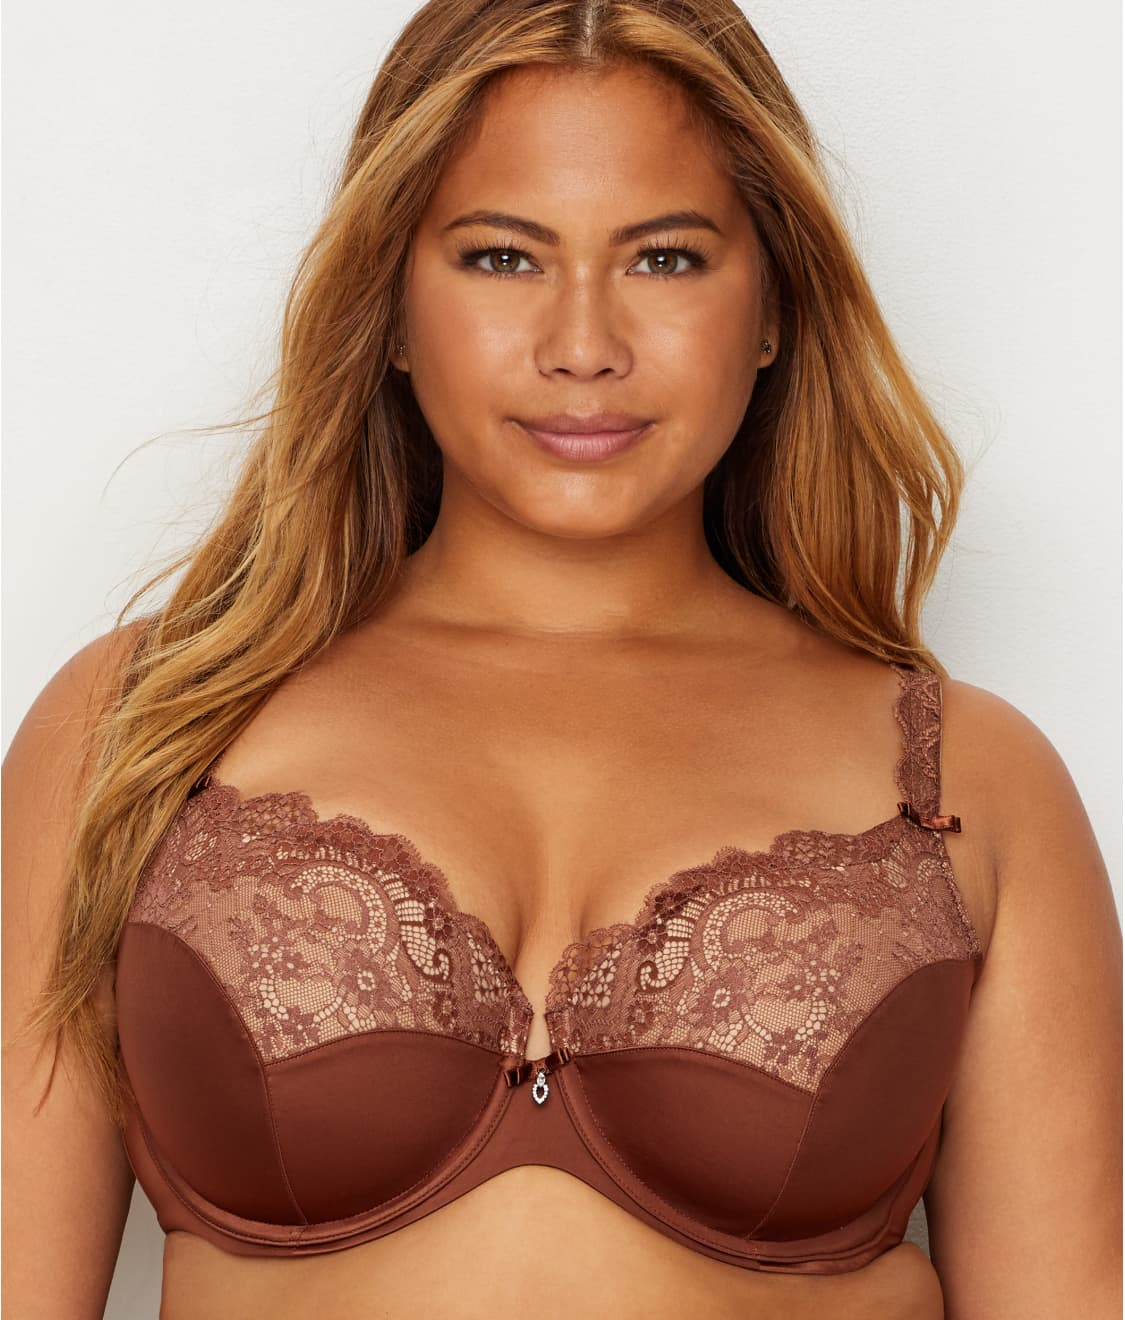 Details about  /Curvy Couture Tulip Lace Push-Up Demi Bra Style 1017